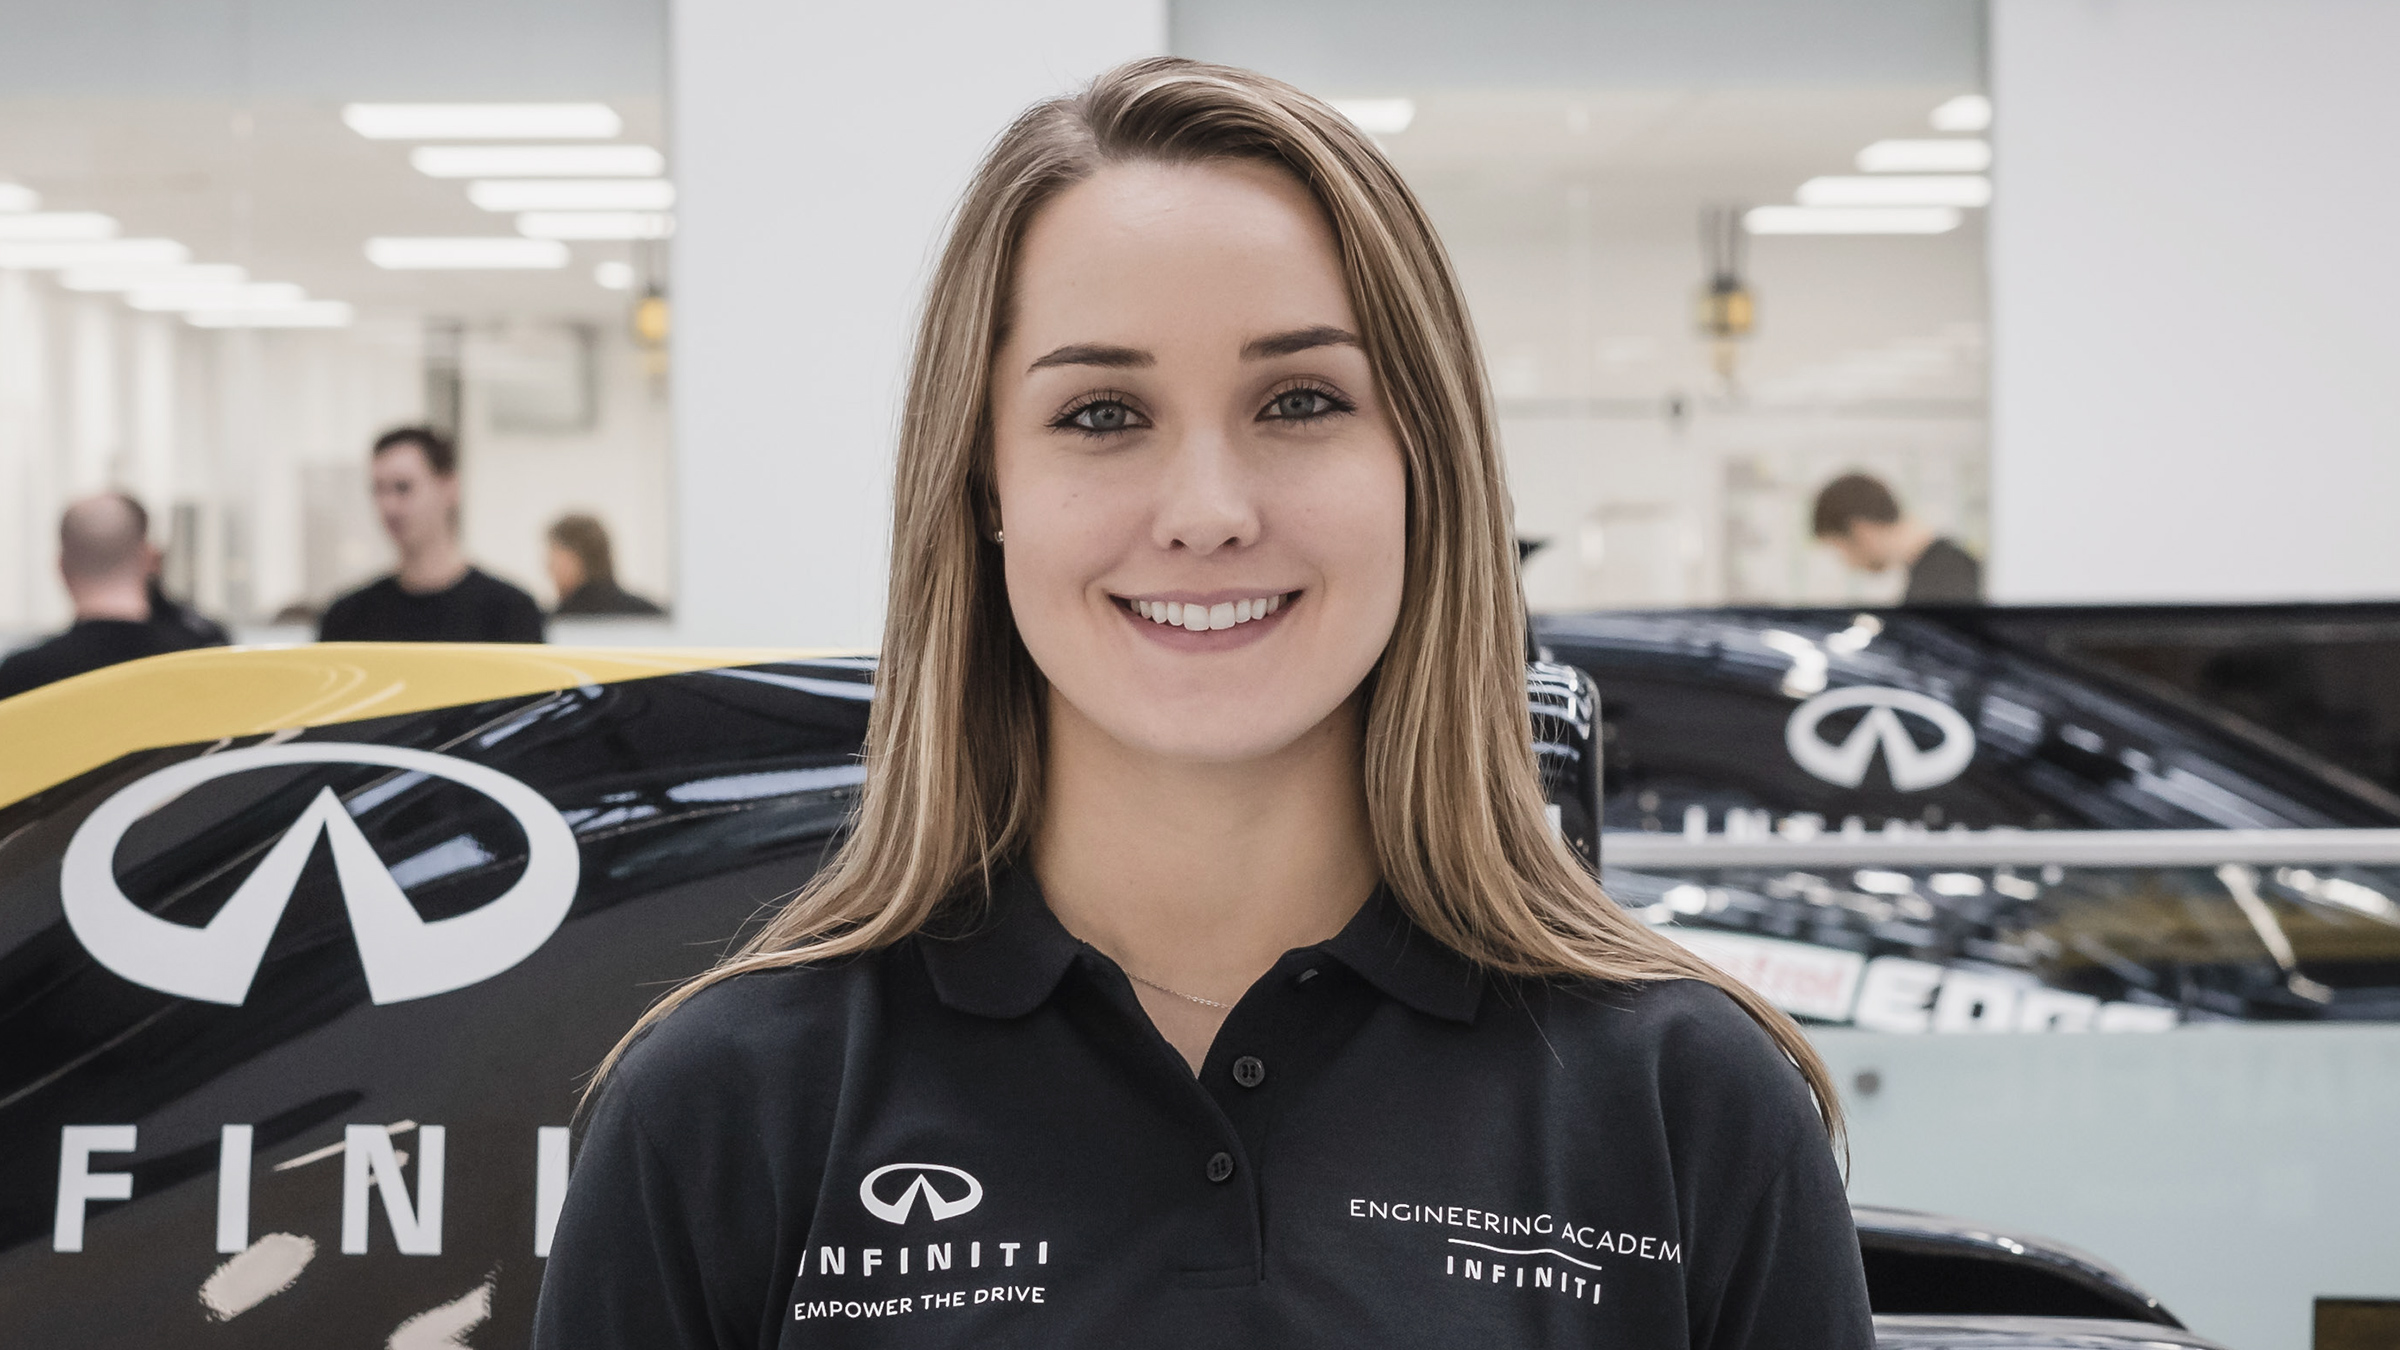 INFINITI Engineering Academy 2019 Engineer Sabre Cook Profile